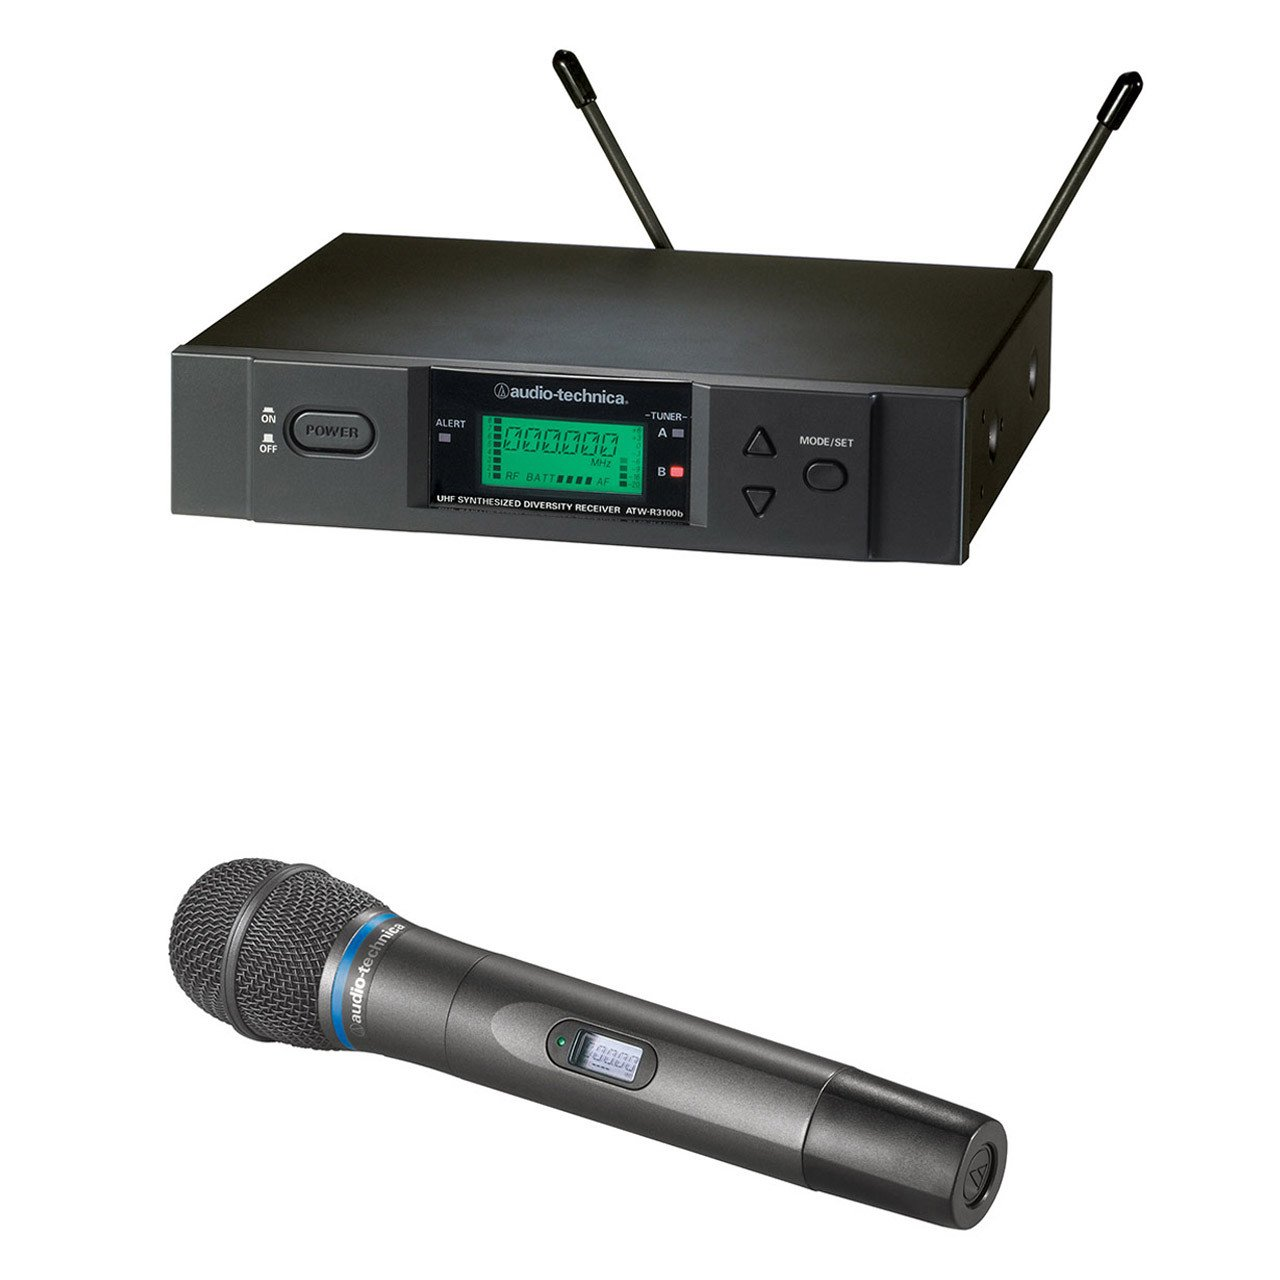 Wireless Systems - Audio-Technica ATW-3000HH-C - 3000 Series Receiver And Handheld Condensor Mic.